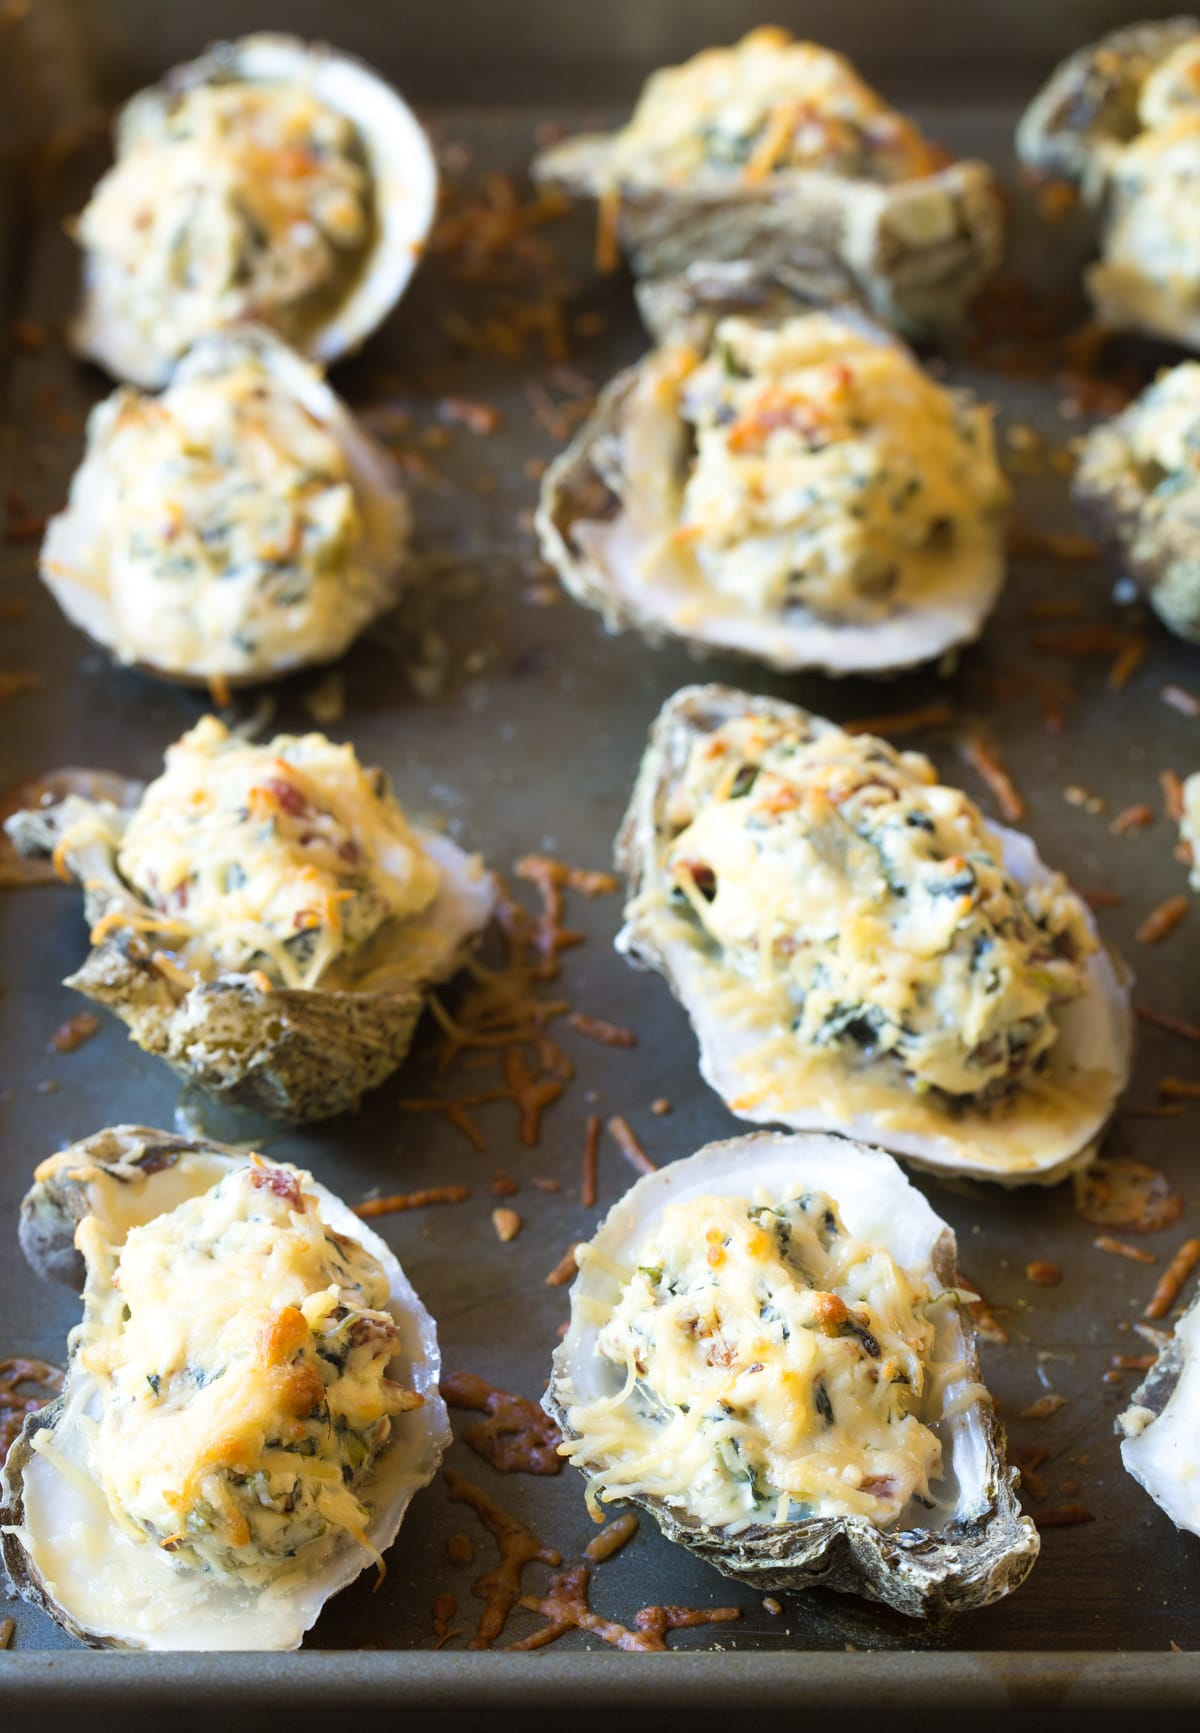 Molten Three-Cheese Baked Oysters Recipe (In The Shell!) #ASpicyPerspective #holiday #newyears #christmas